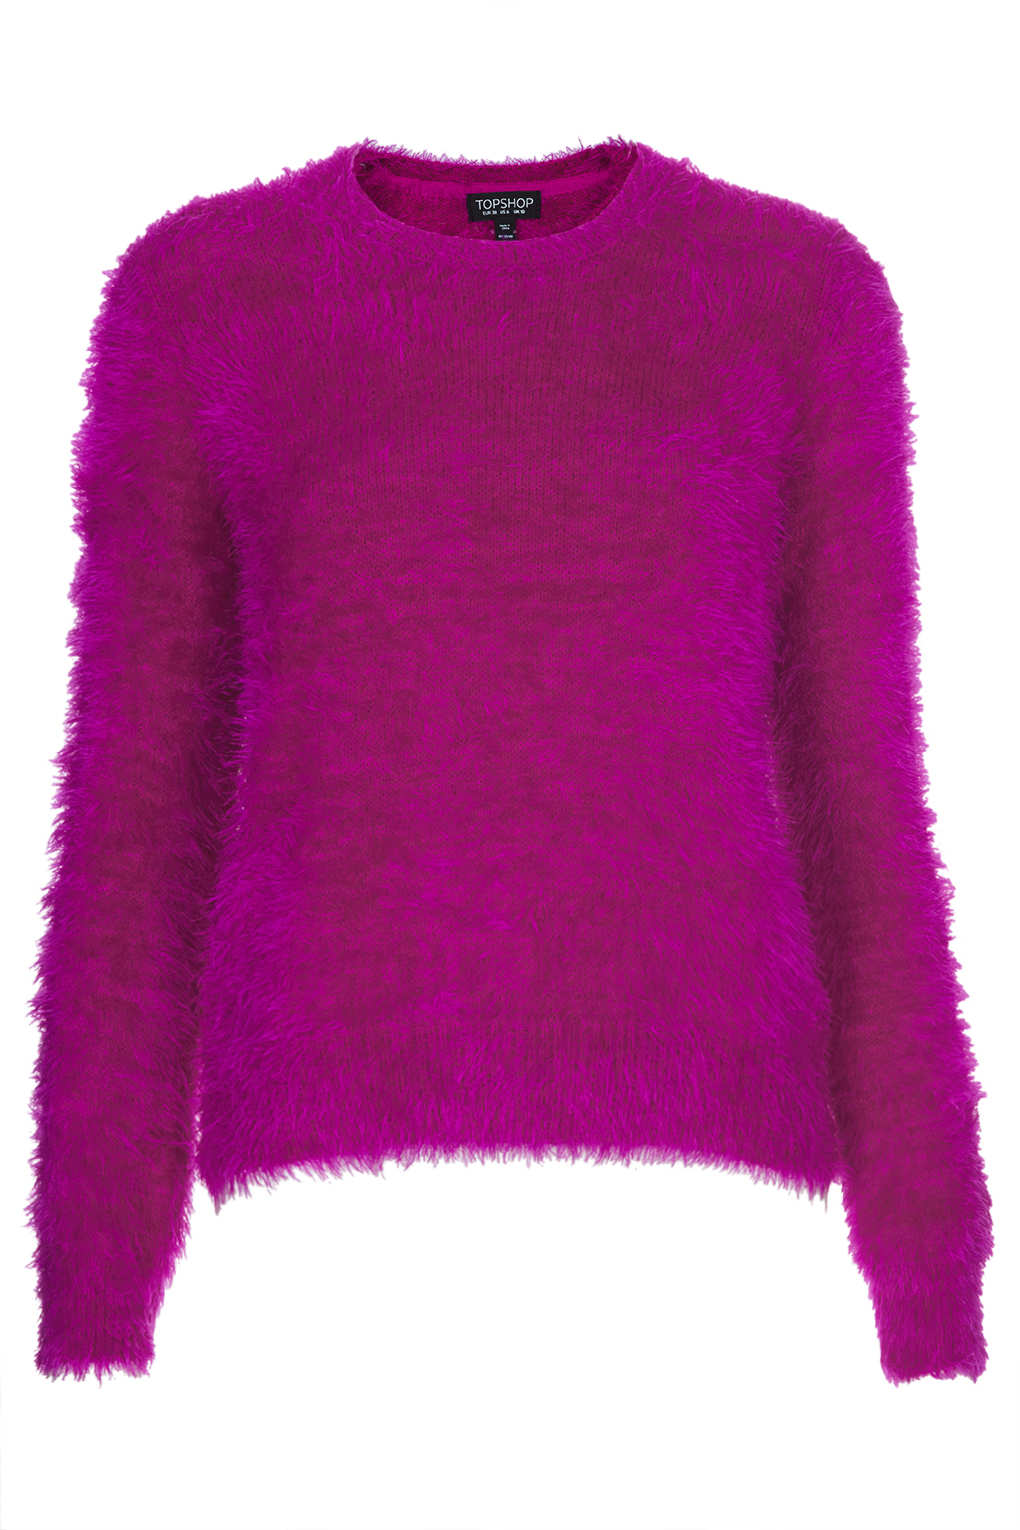 Topshop Knitted Fluffy Crew Jumper in Pink | Lyst